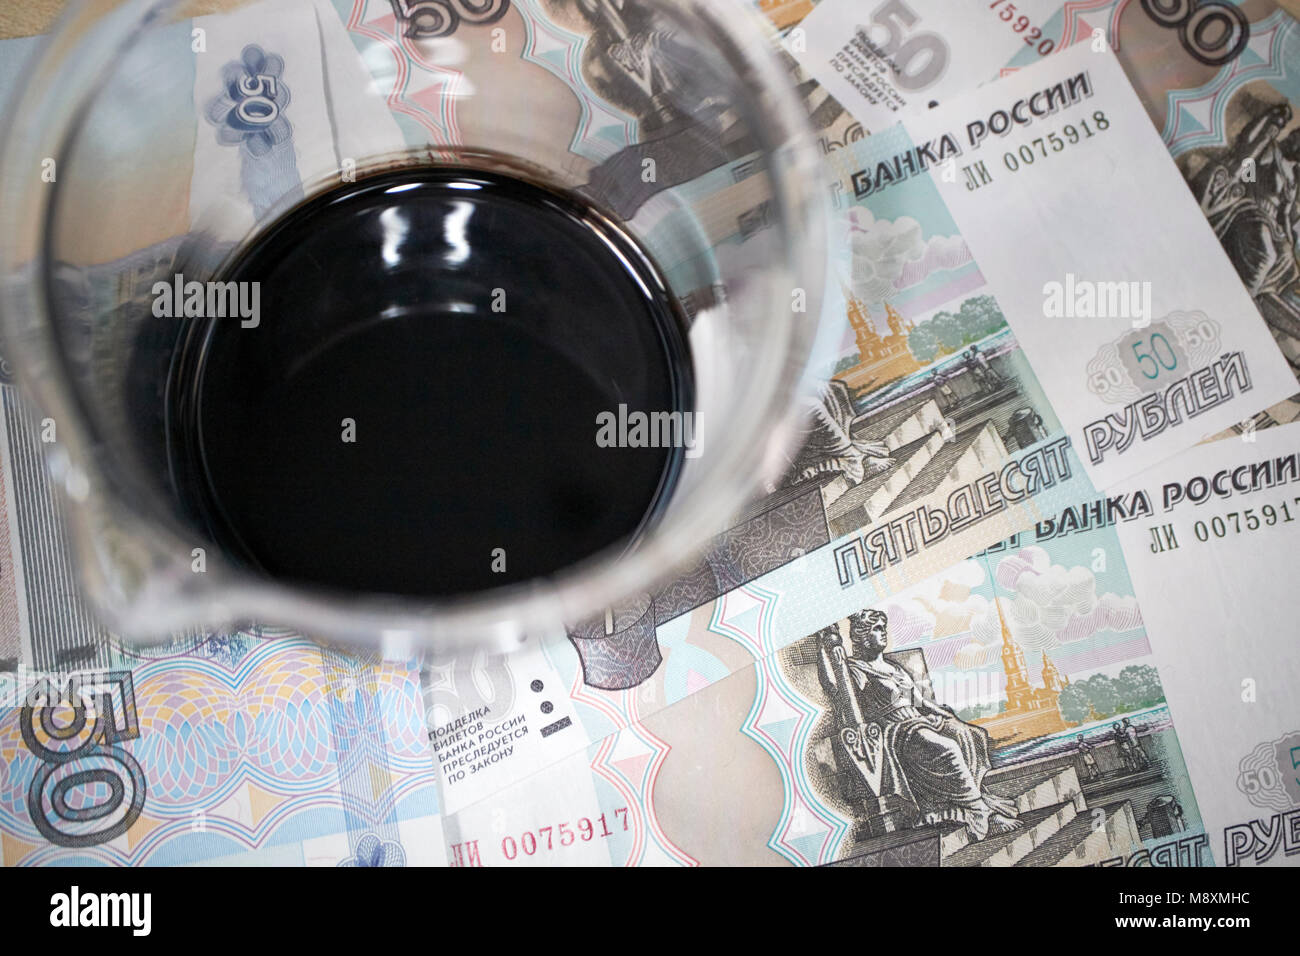 jar of crude oil with russian roubles currency trading concept - Stock Image